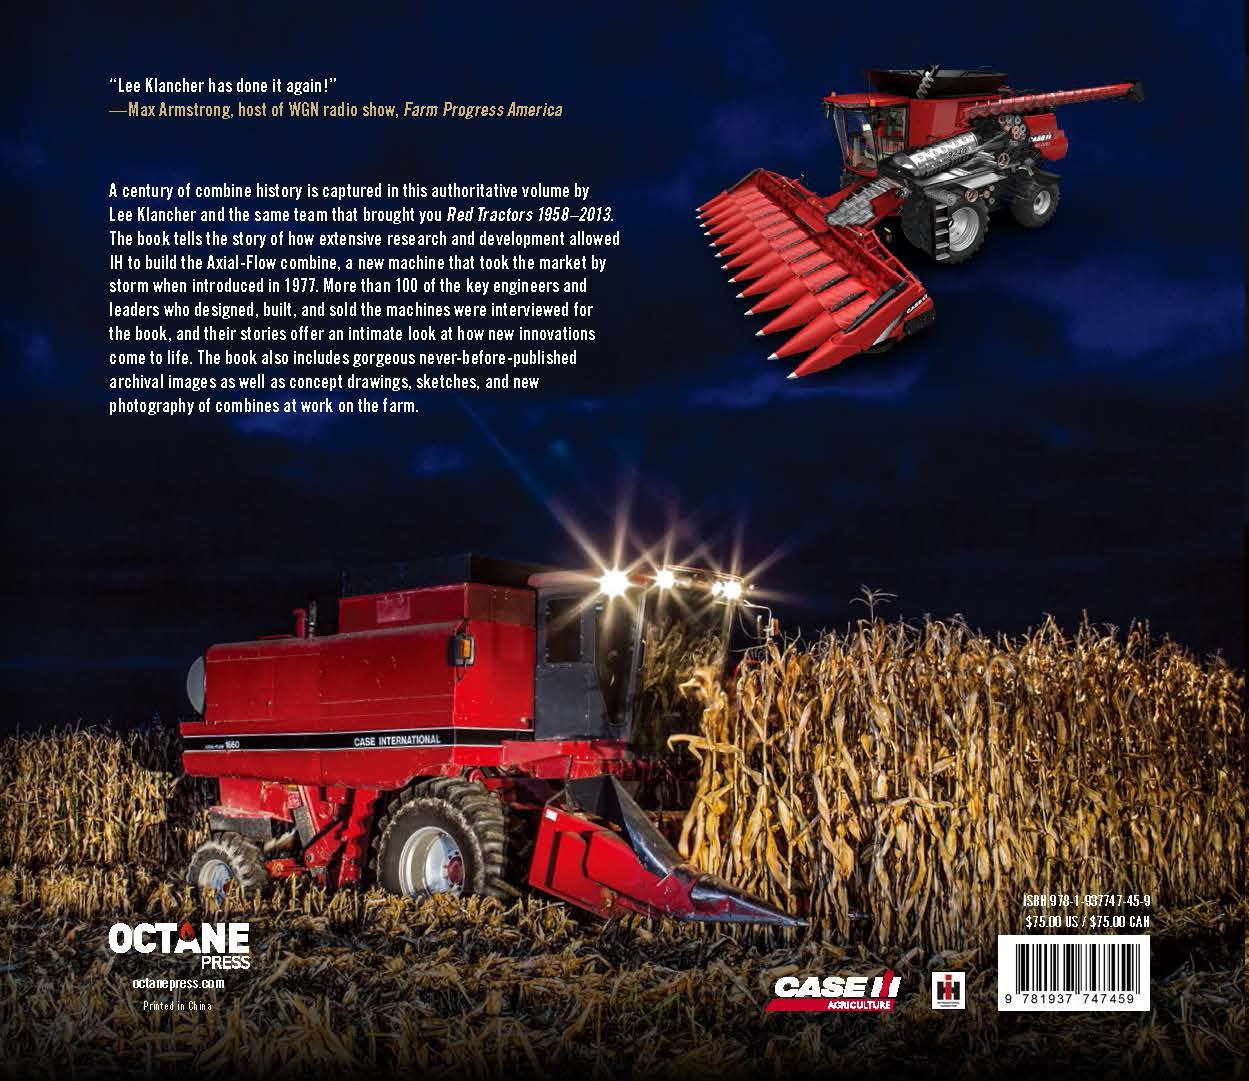 Red Combines 1915-2015: The Authoritative Guide to International Harvester and Case IH Combines and Harvesting Equipment by Octane Press LLC (Image #2)